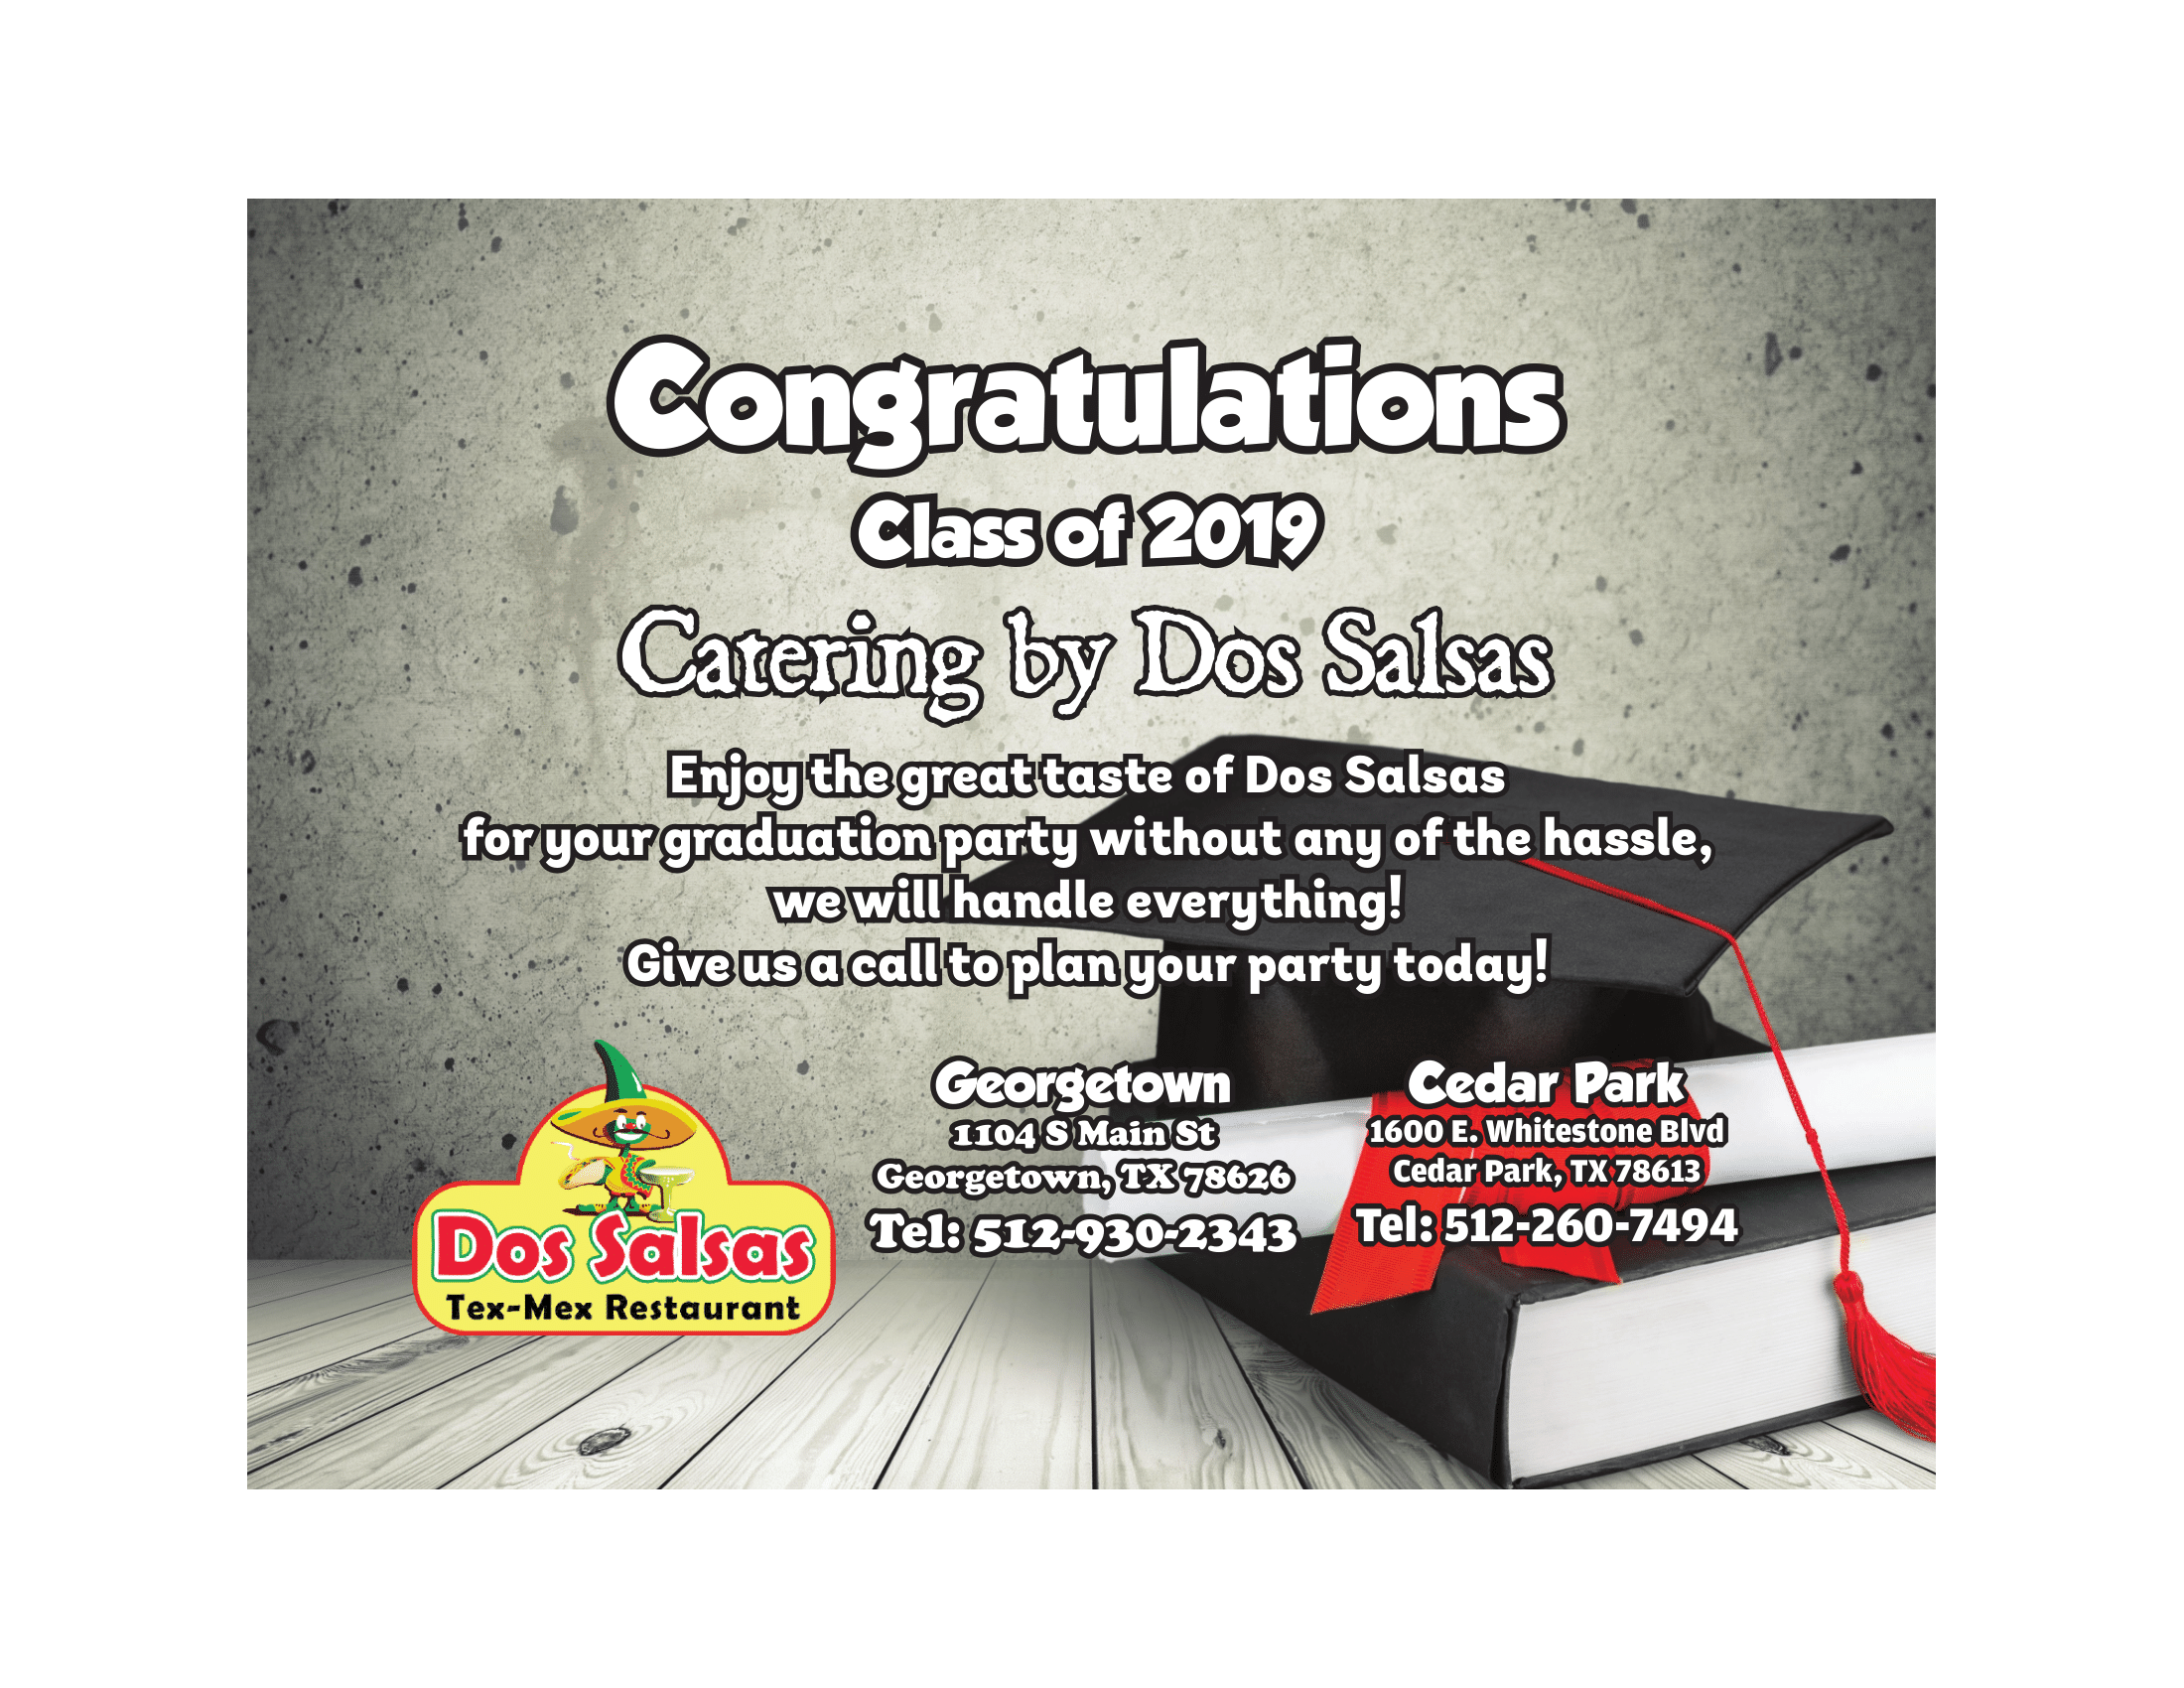 congratulation class of 2019! Catering by dos salsas